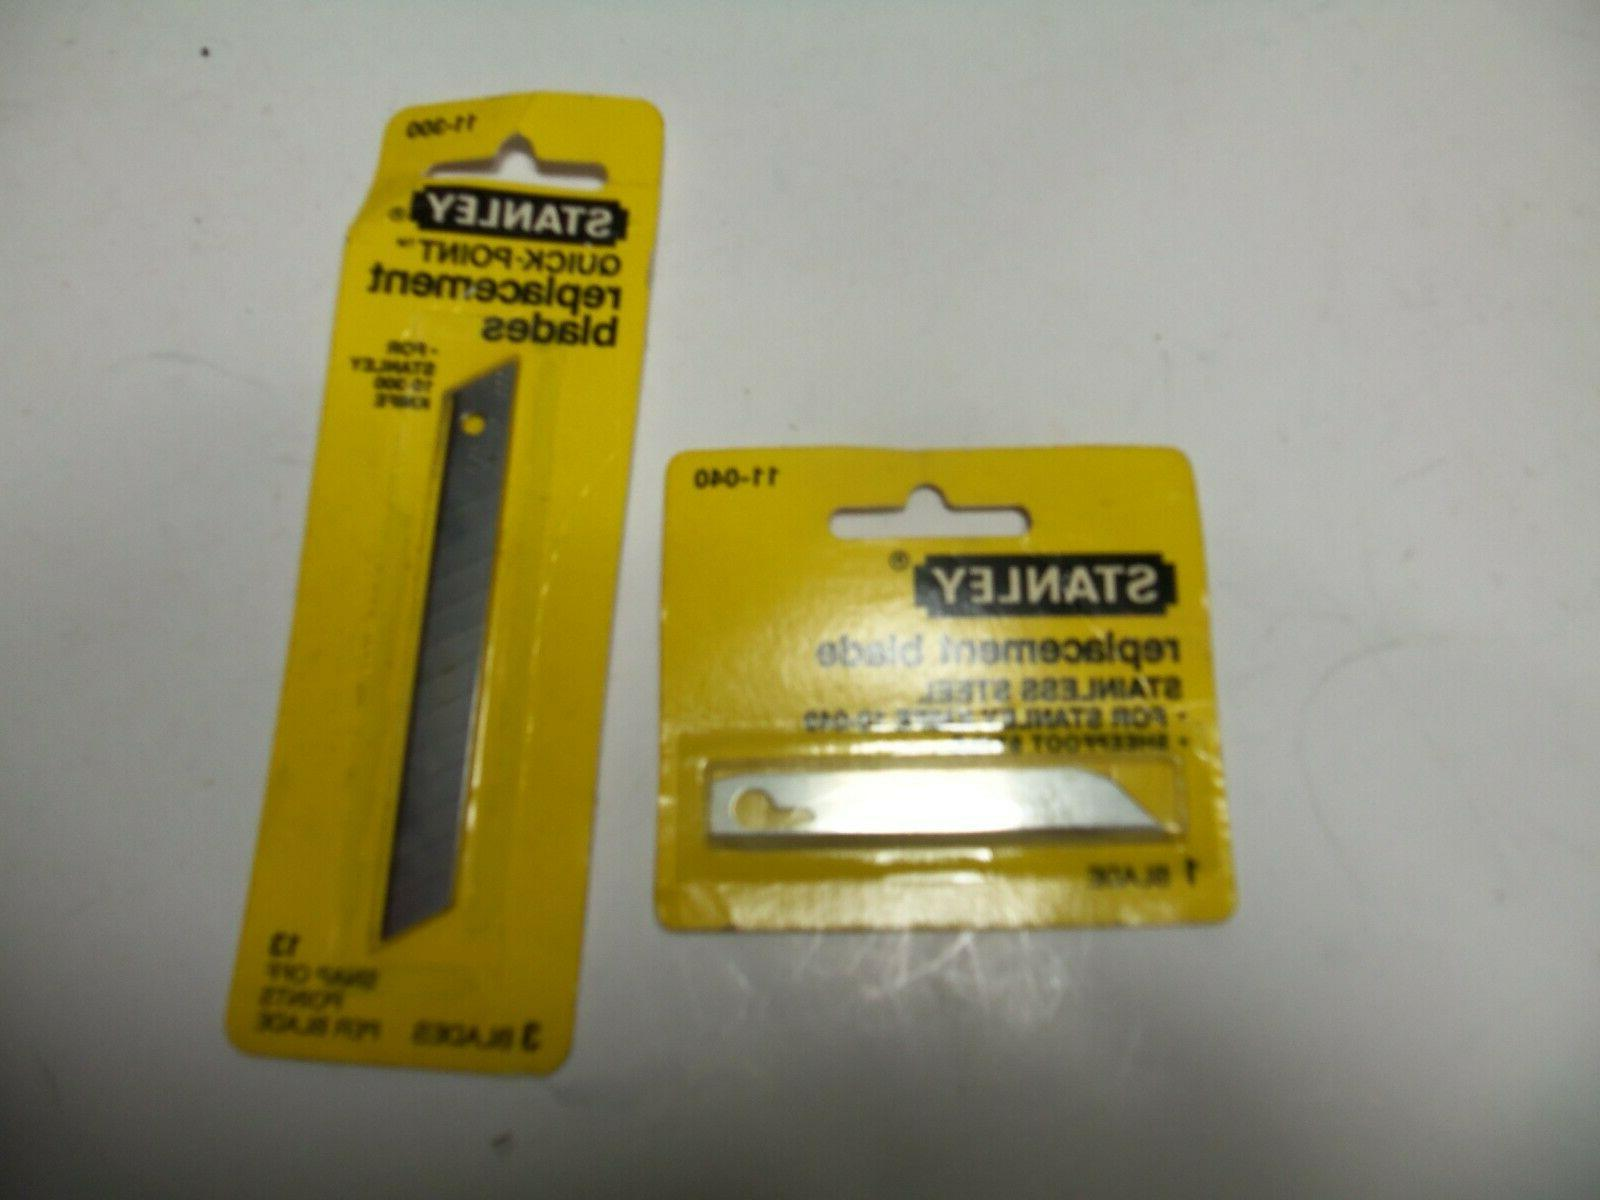 11 040 and 11 300 replacement blades